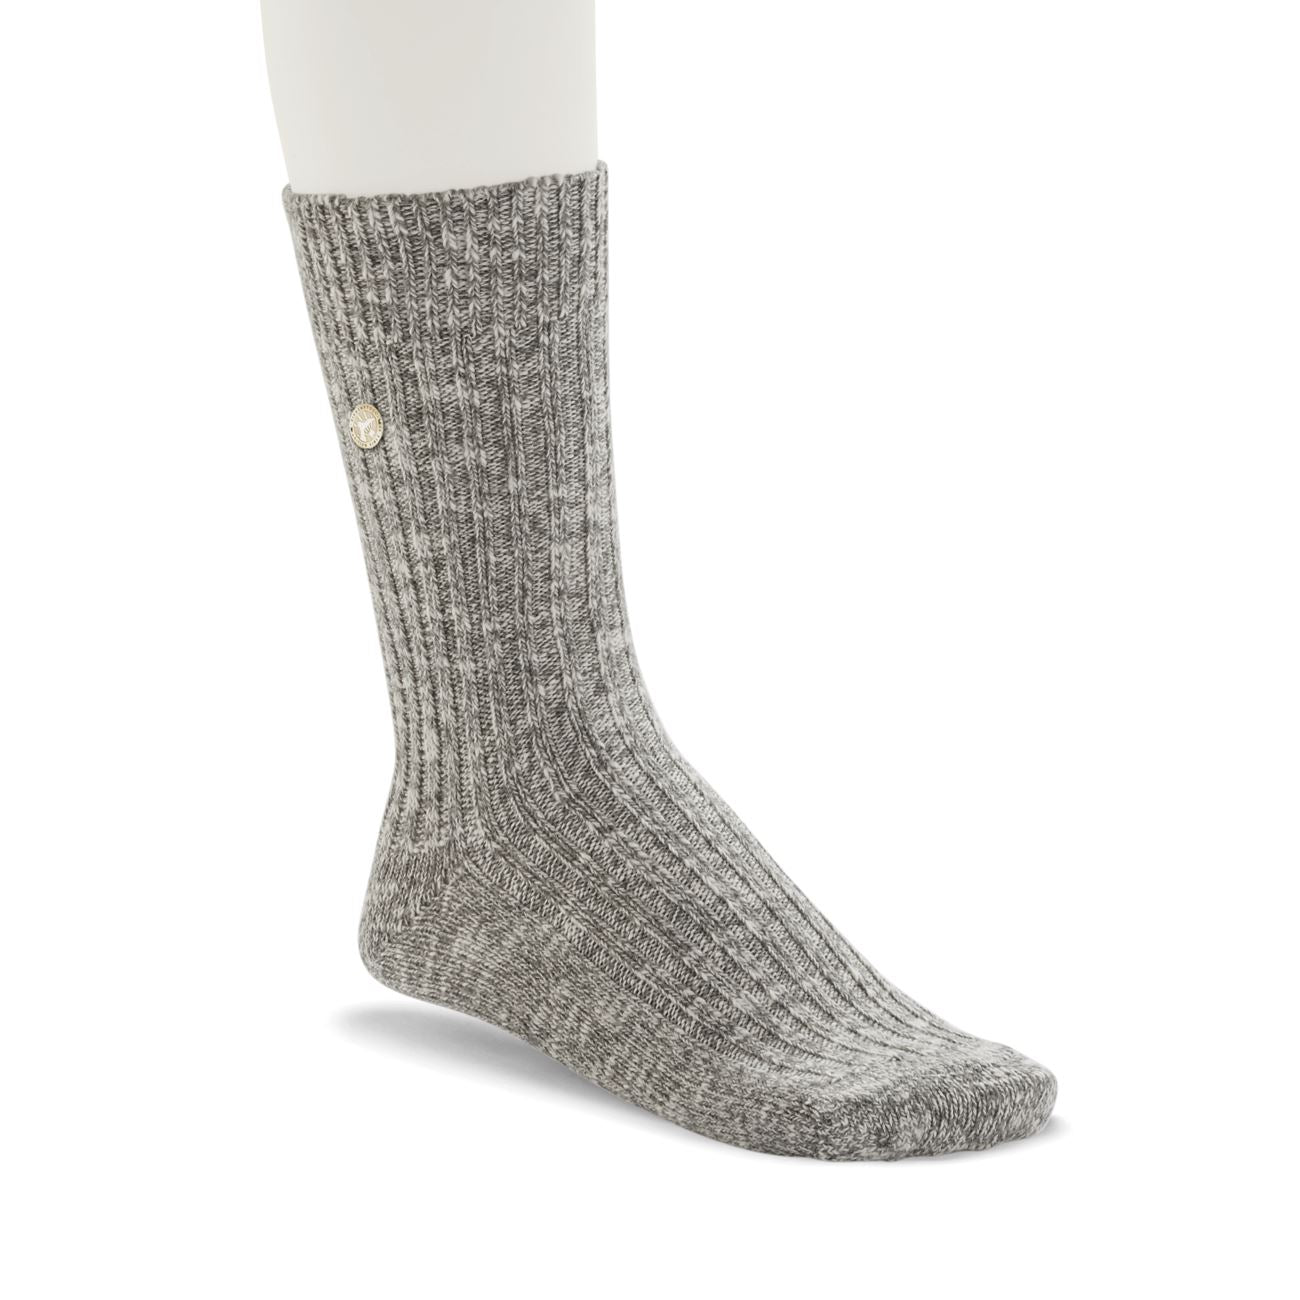 Birkenstock Socks, Fashion Slub Women, Gray White Socks Birkenstock Socks Gray White 39-41